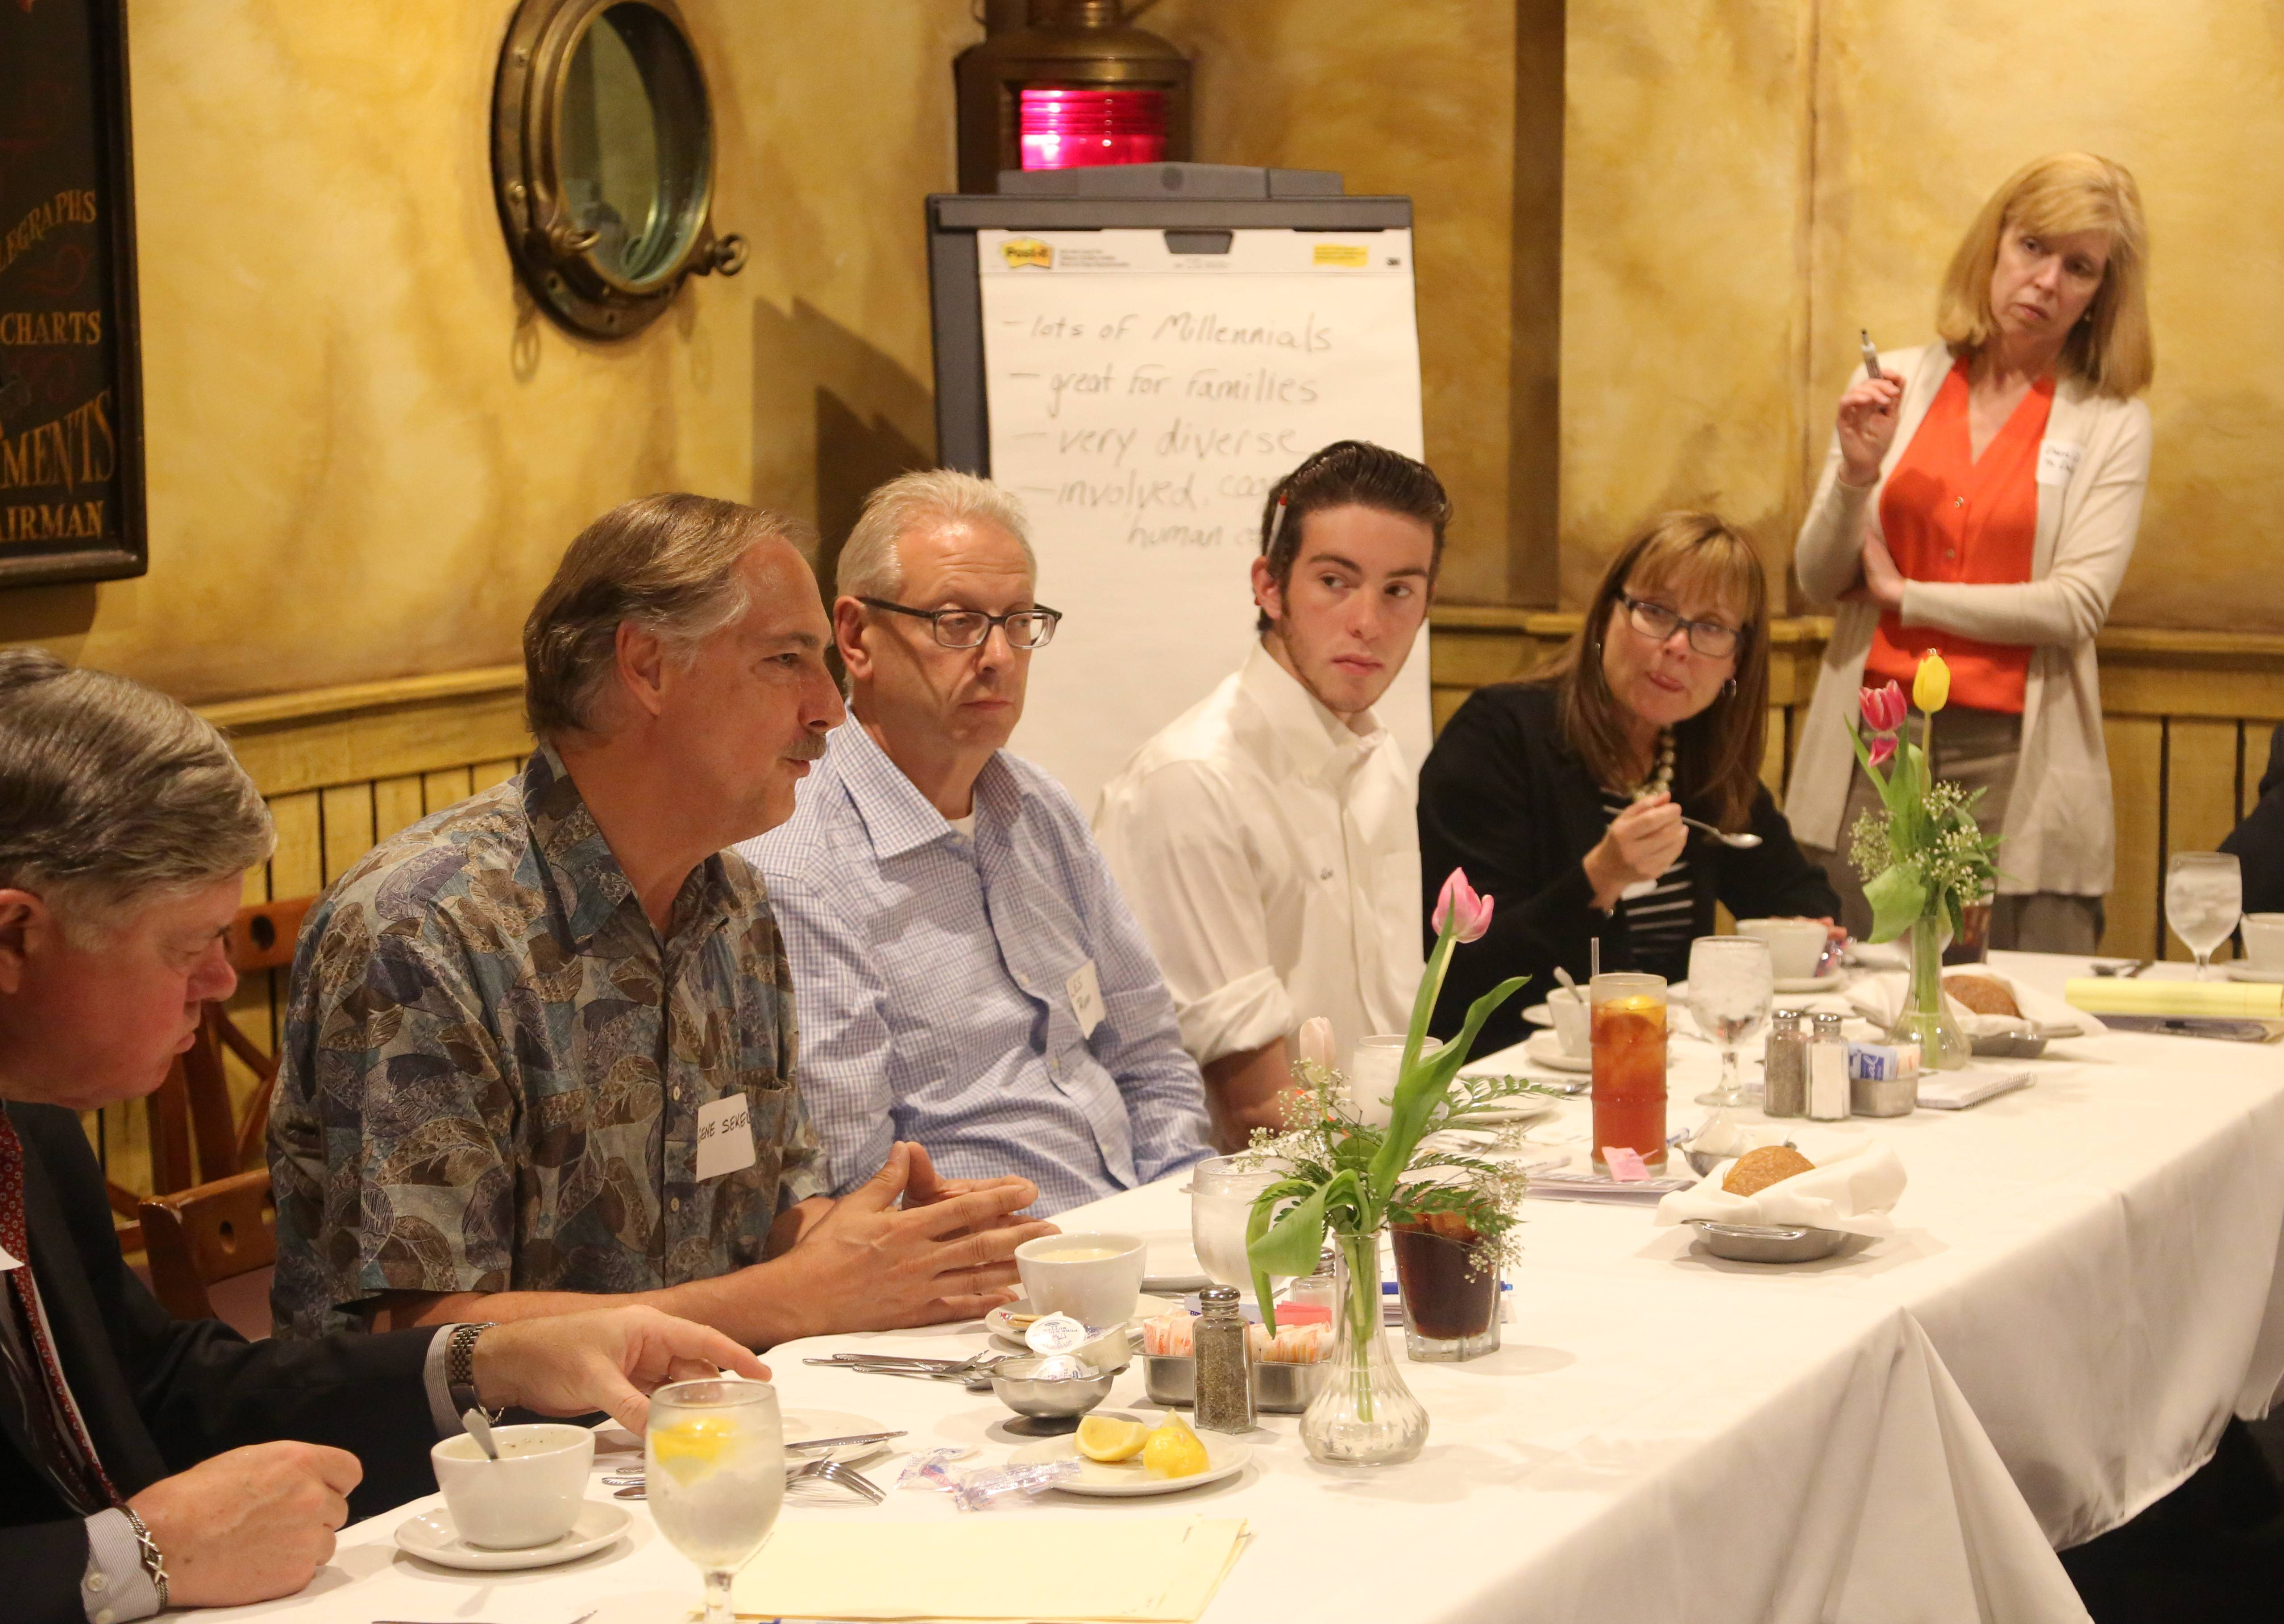 Lake County community leaders and residents participate in a round-table discussion Monday at Dover Straits in Mundelein.